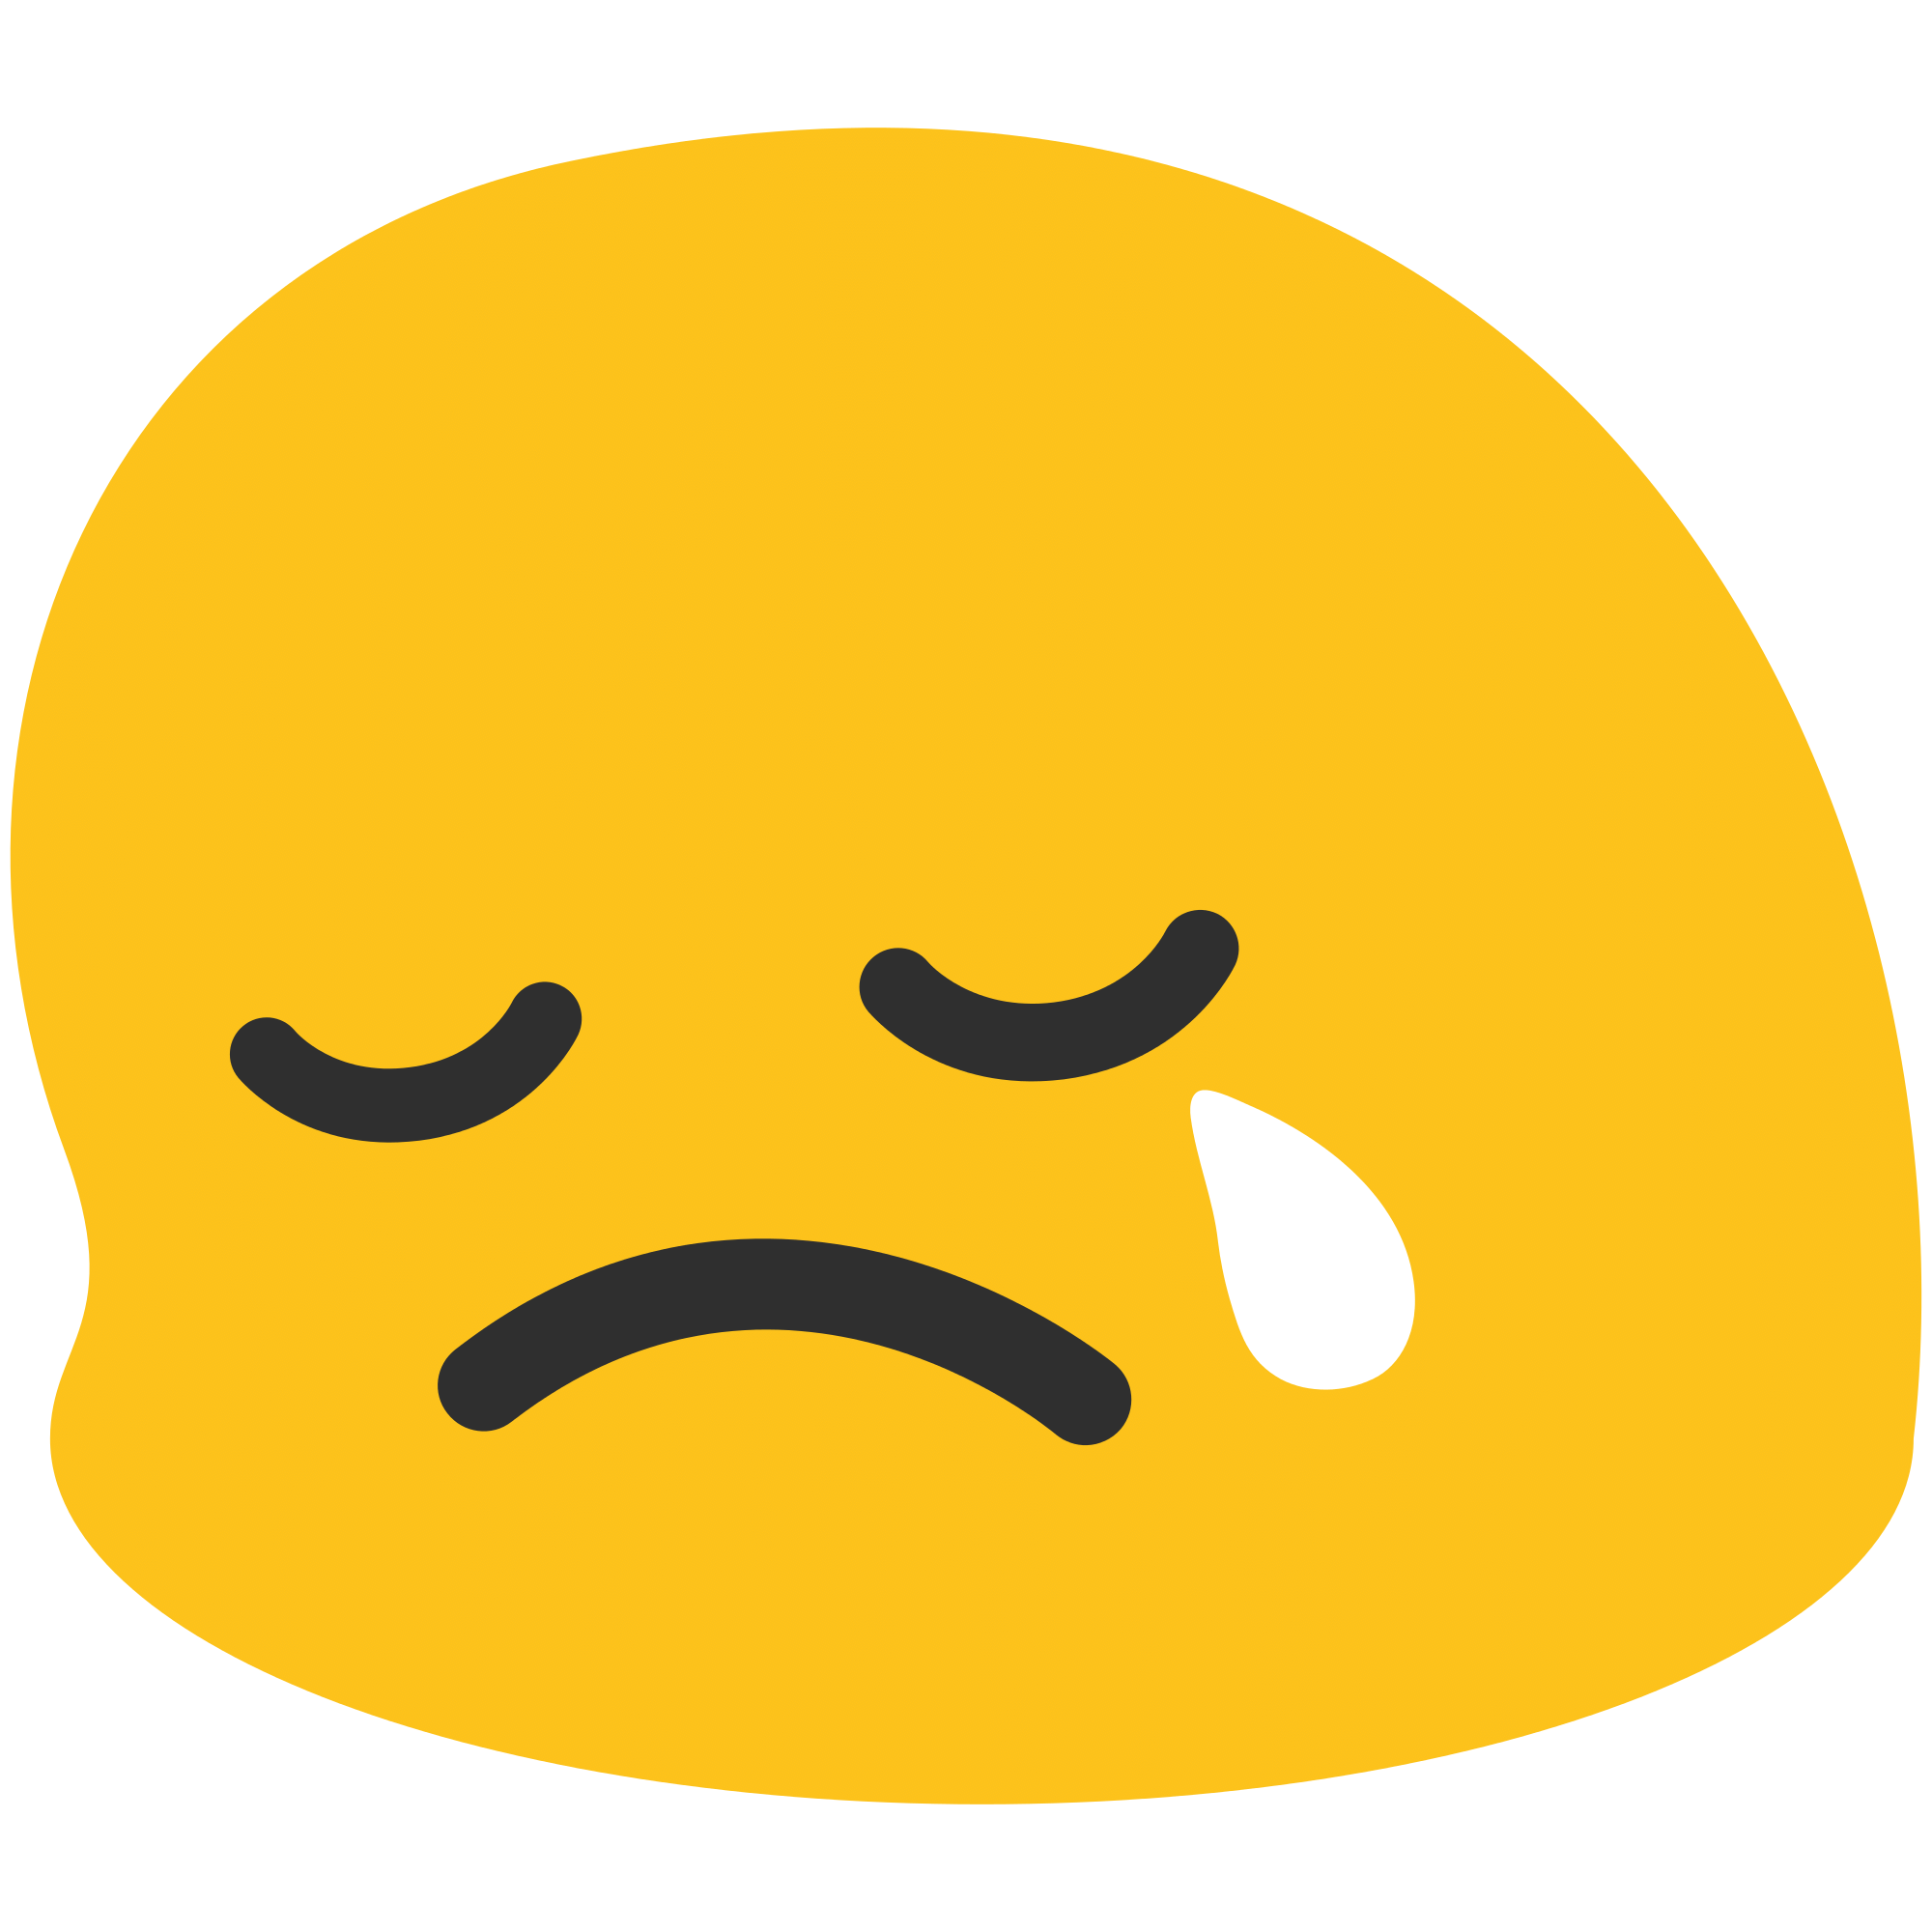 Happy sad png. Emoticon very transparent stickpng